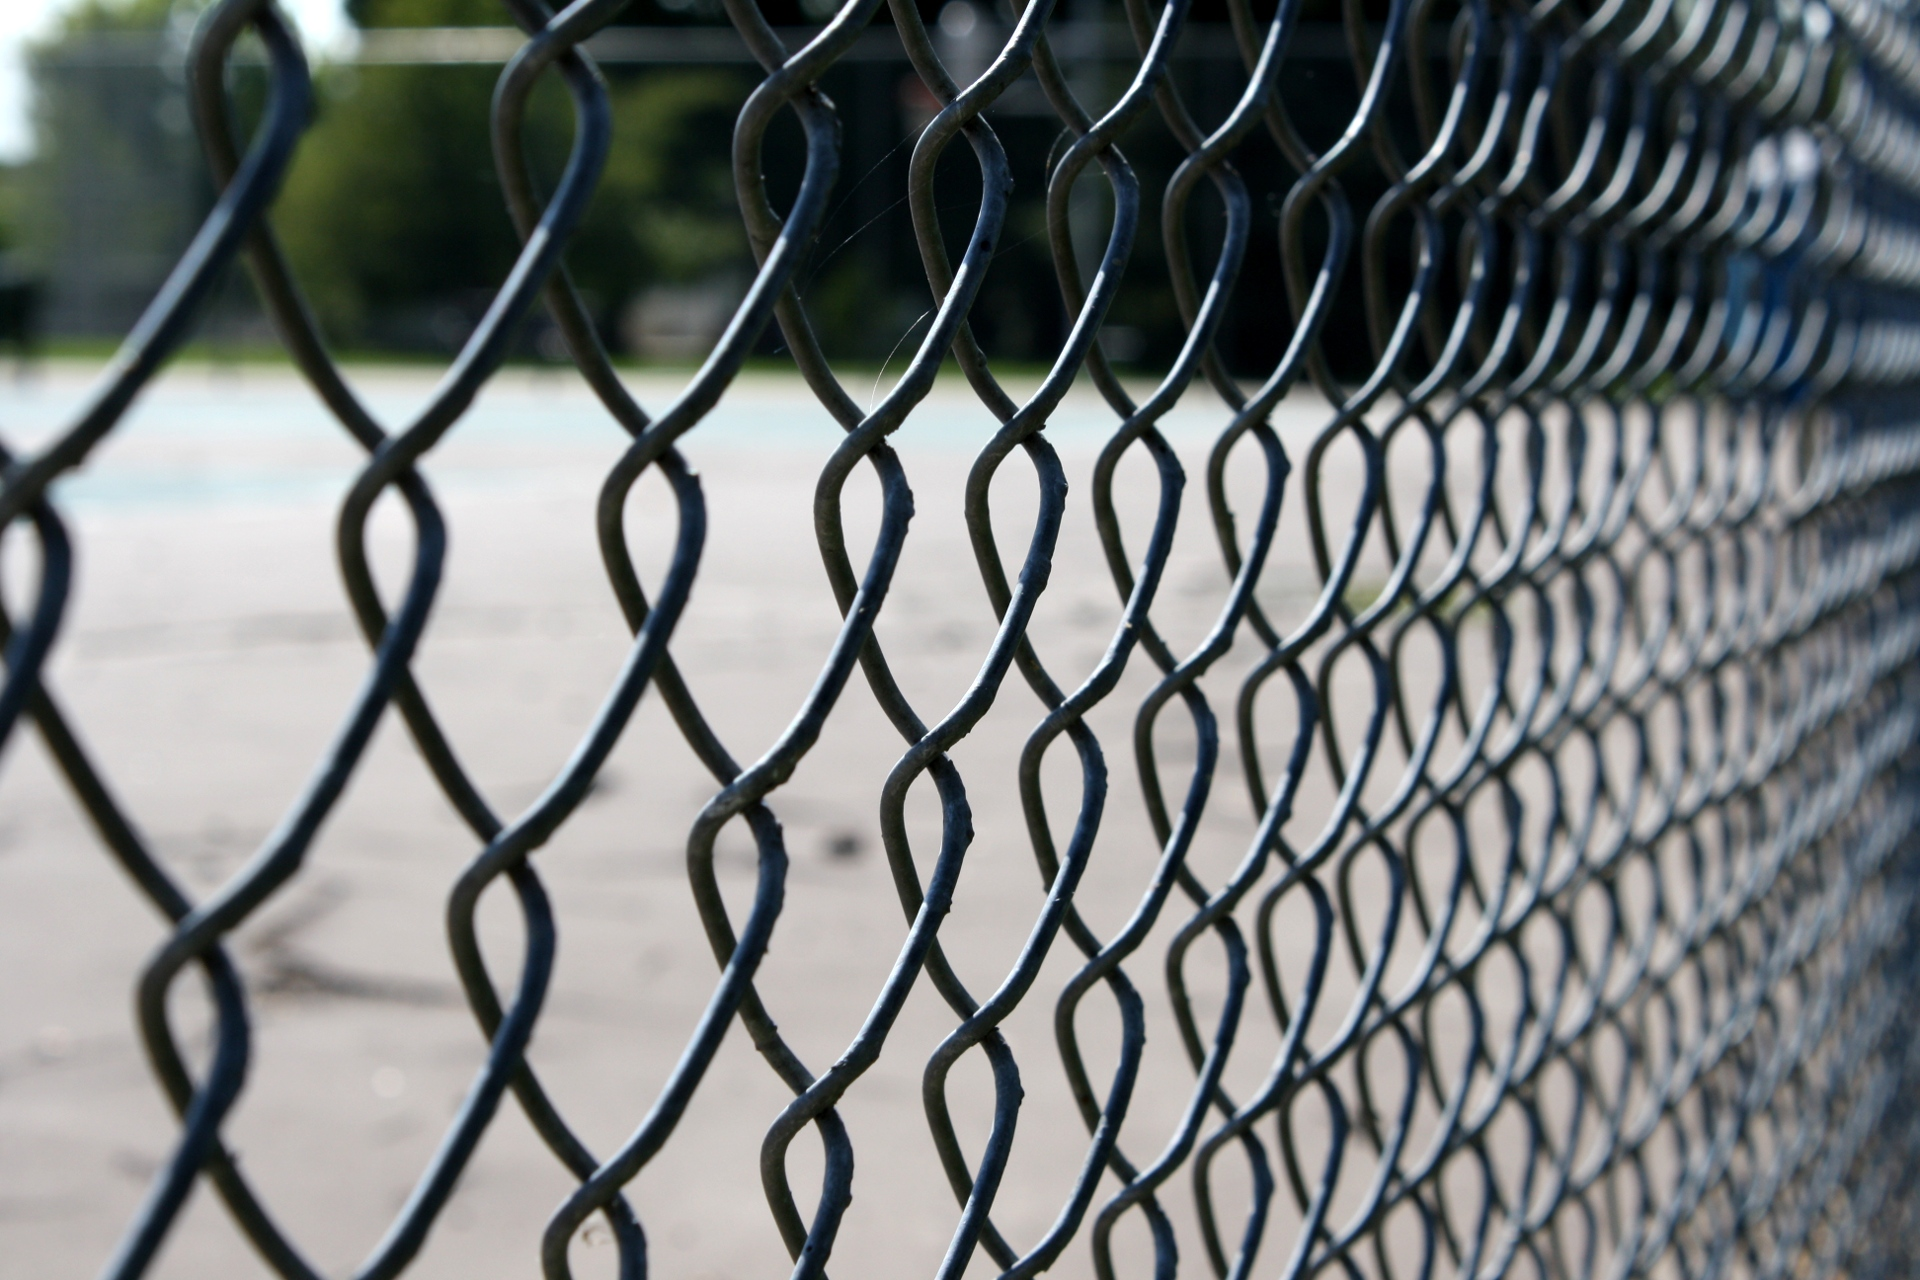 851325-metal-fence-wallpaper